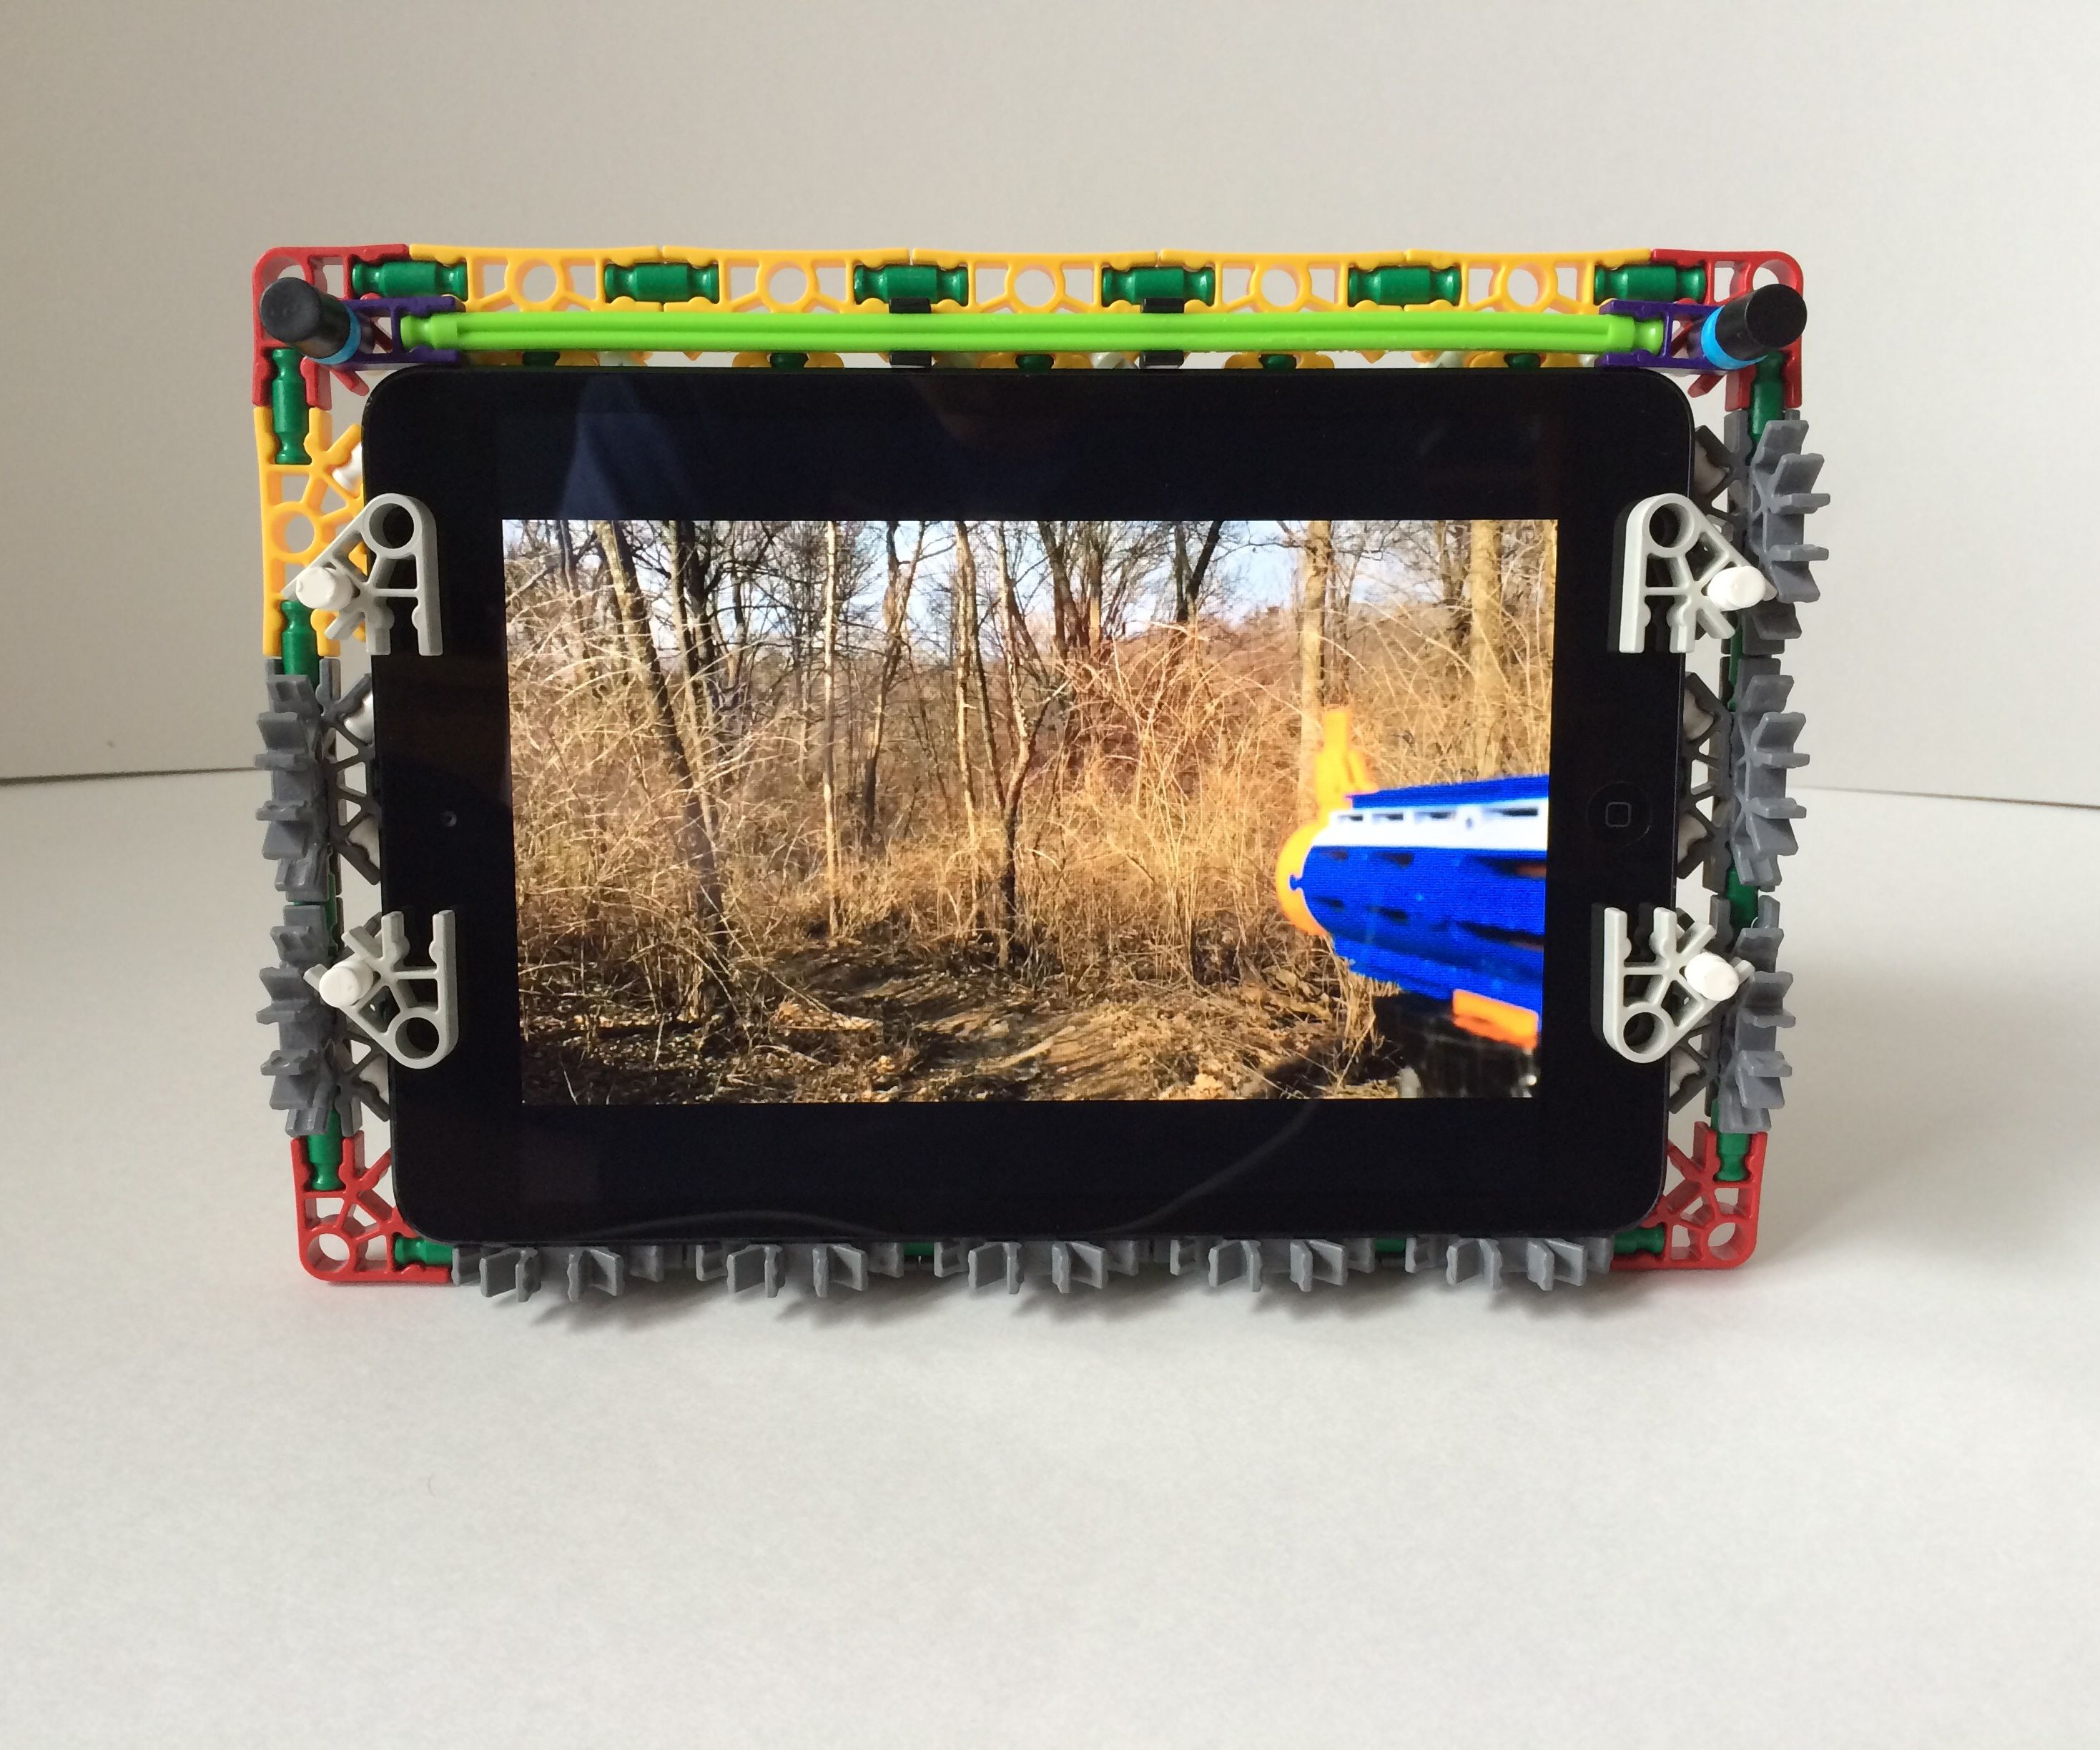 K'nex Tablet Case